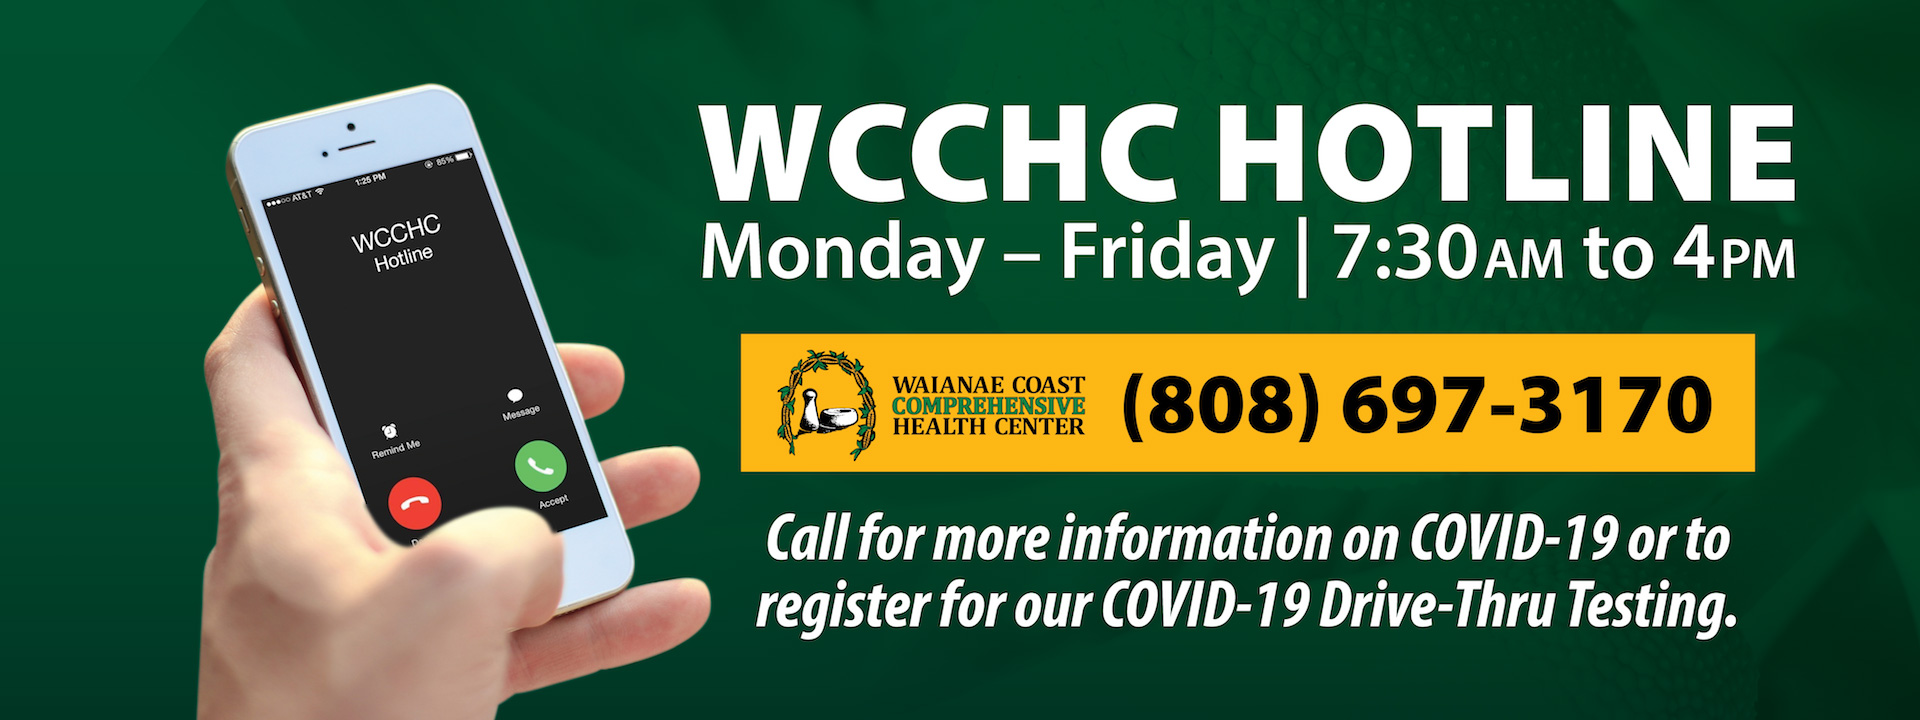 WCCHC Hotline